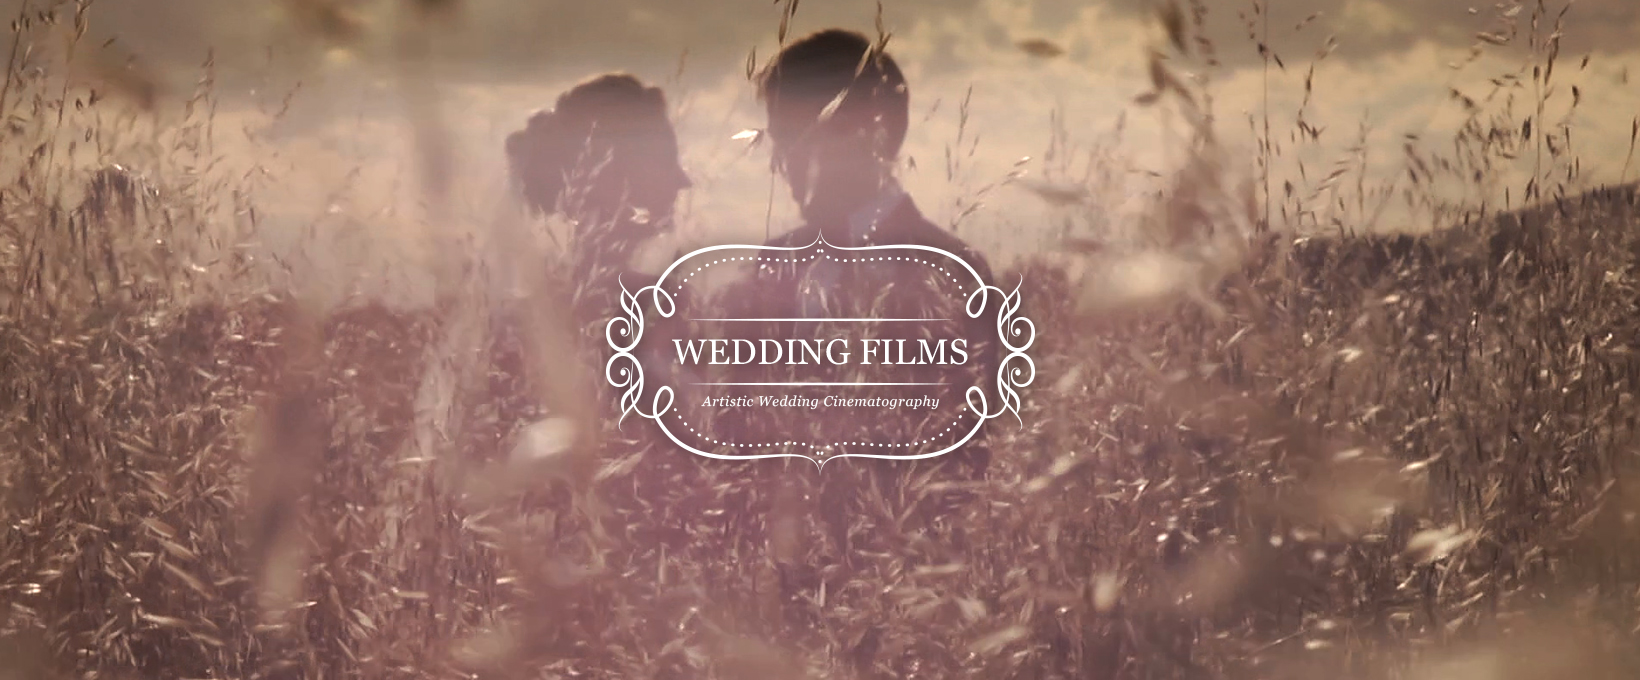 Wedding Films Wedding Videography